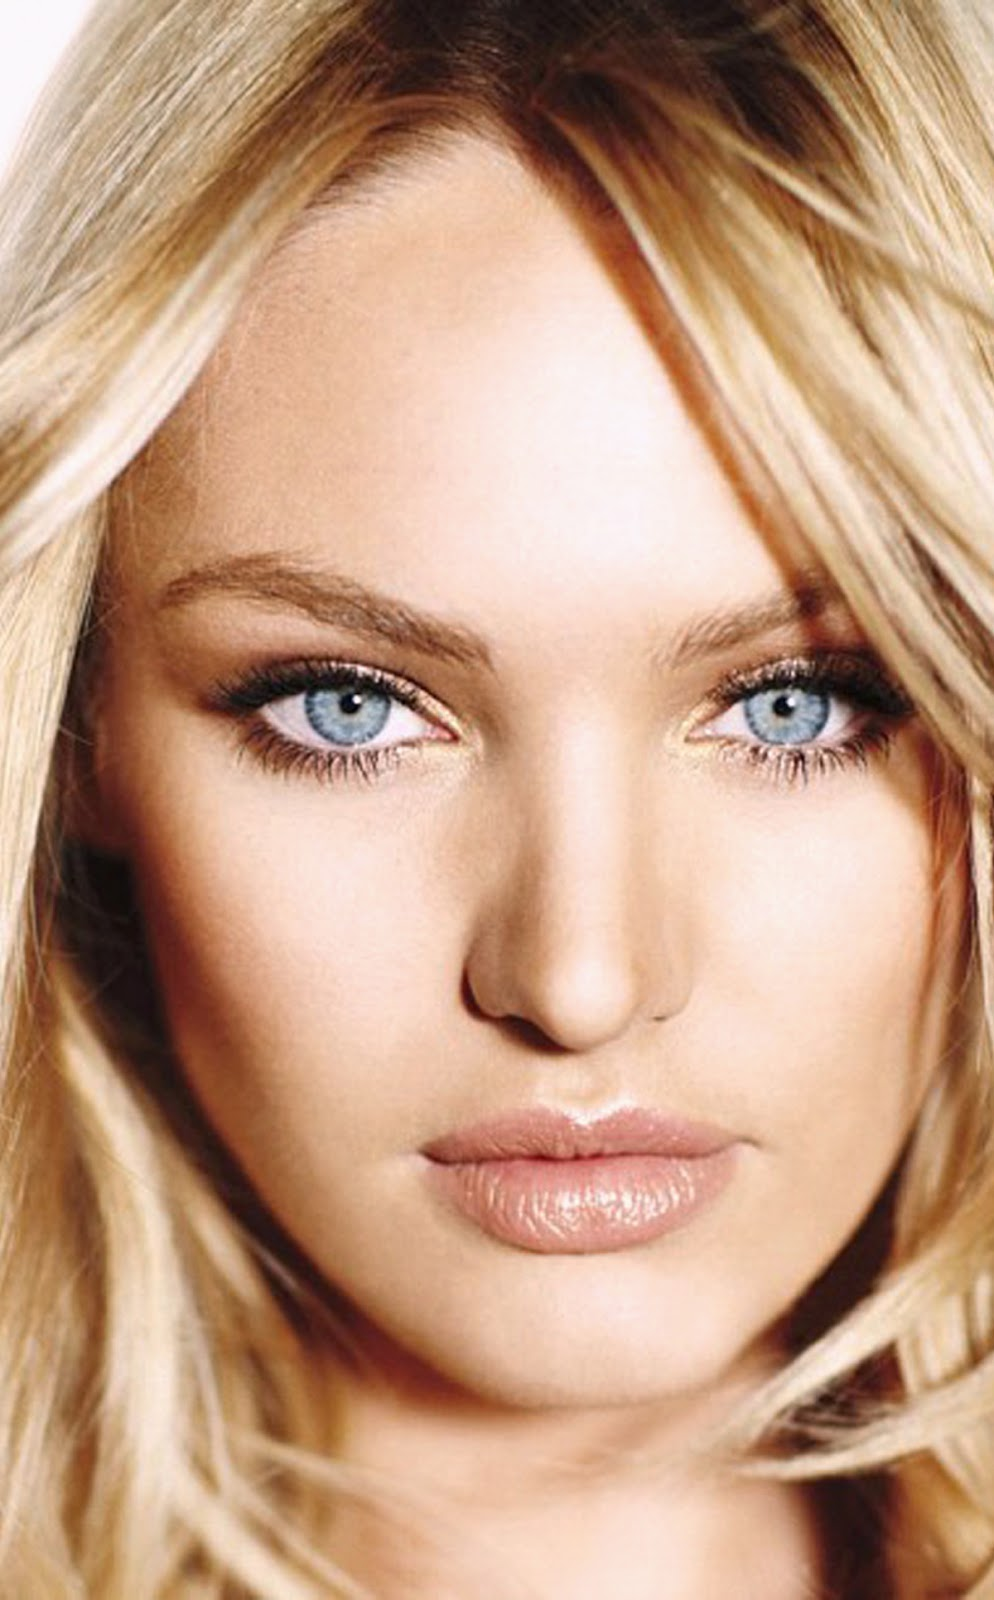 PLUS CANDICE SWANEPOEL CLOSE UP VICTORIA'S SECRET WALLPAPER.jpg